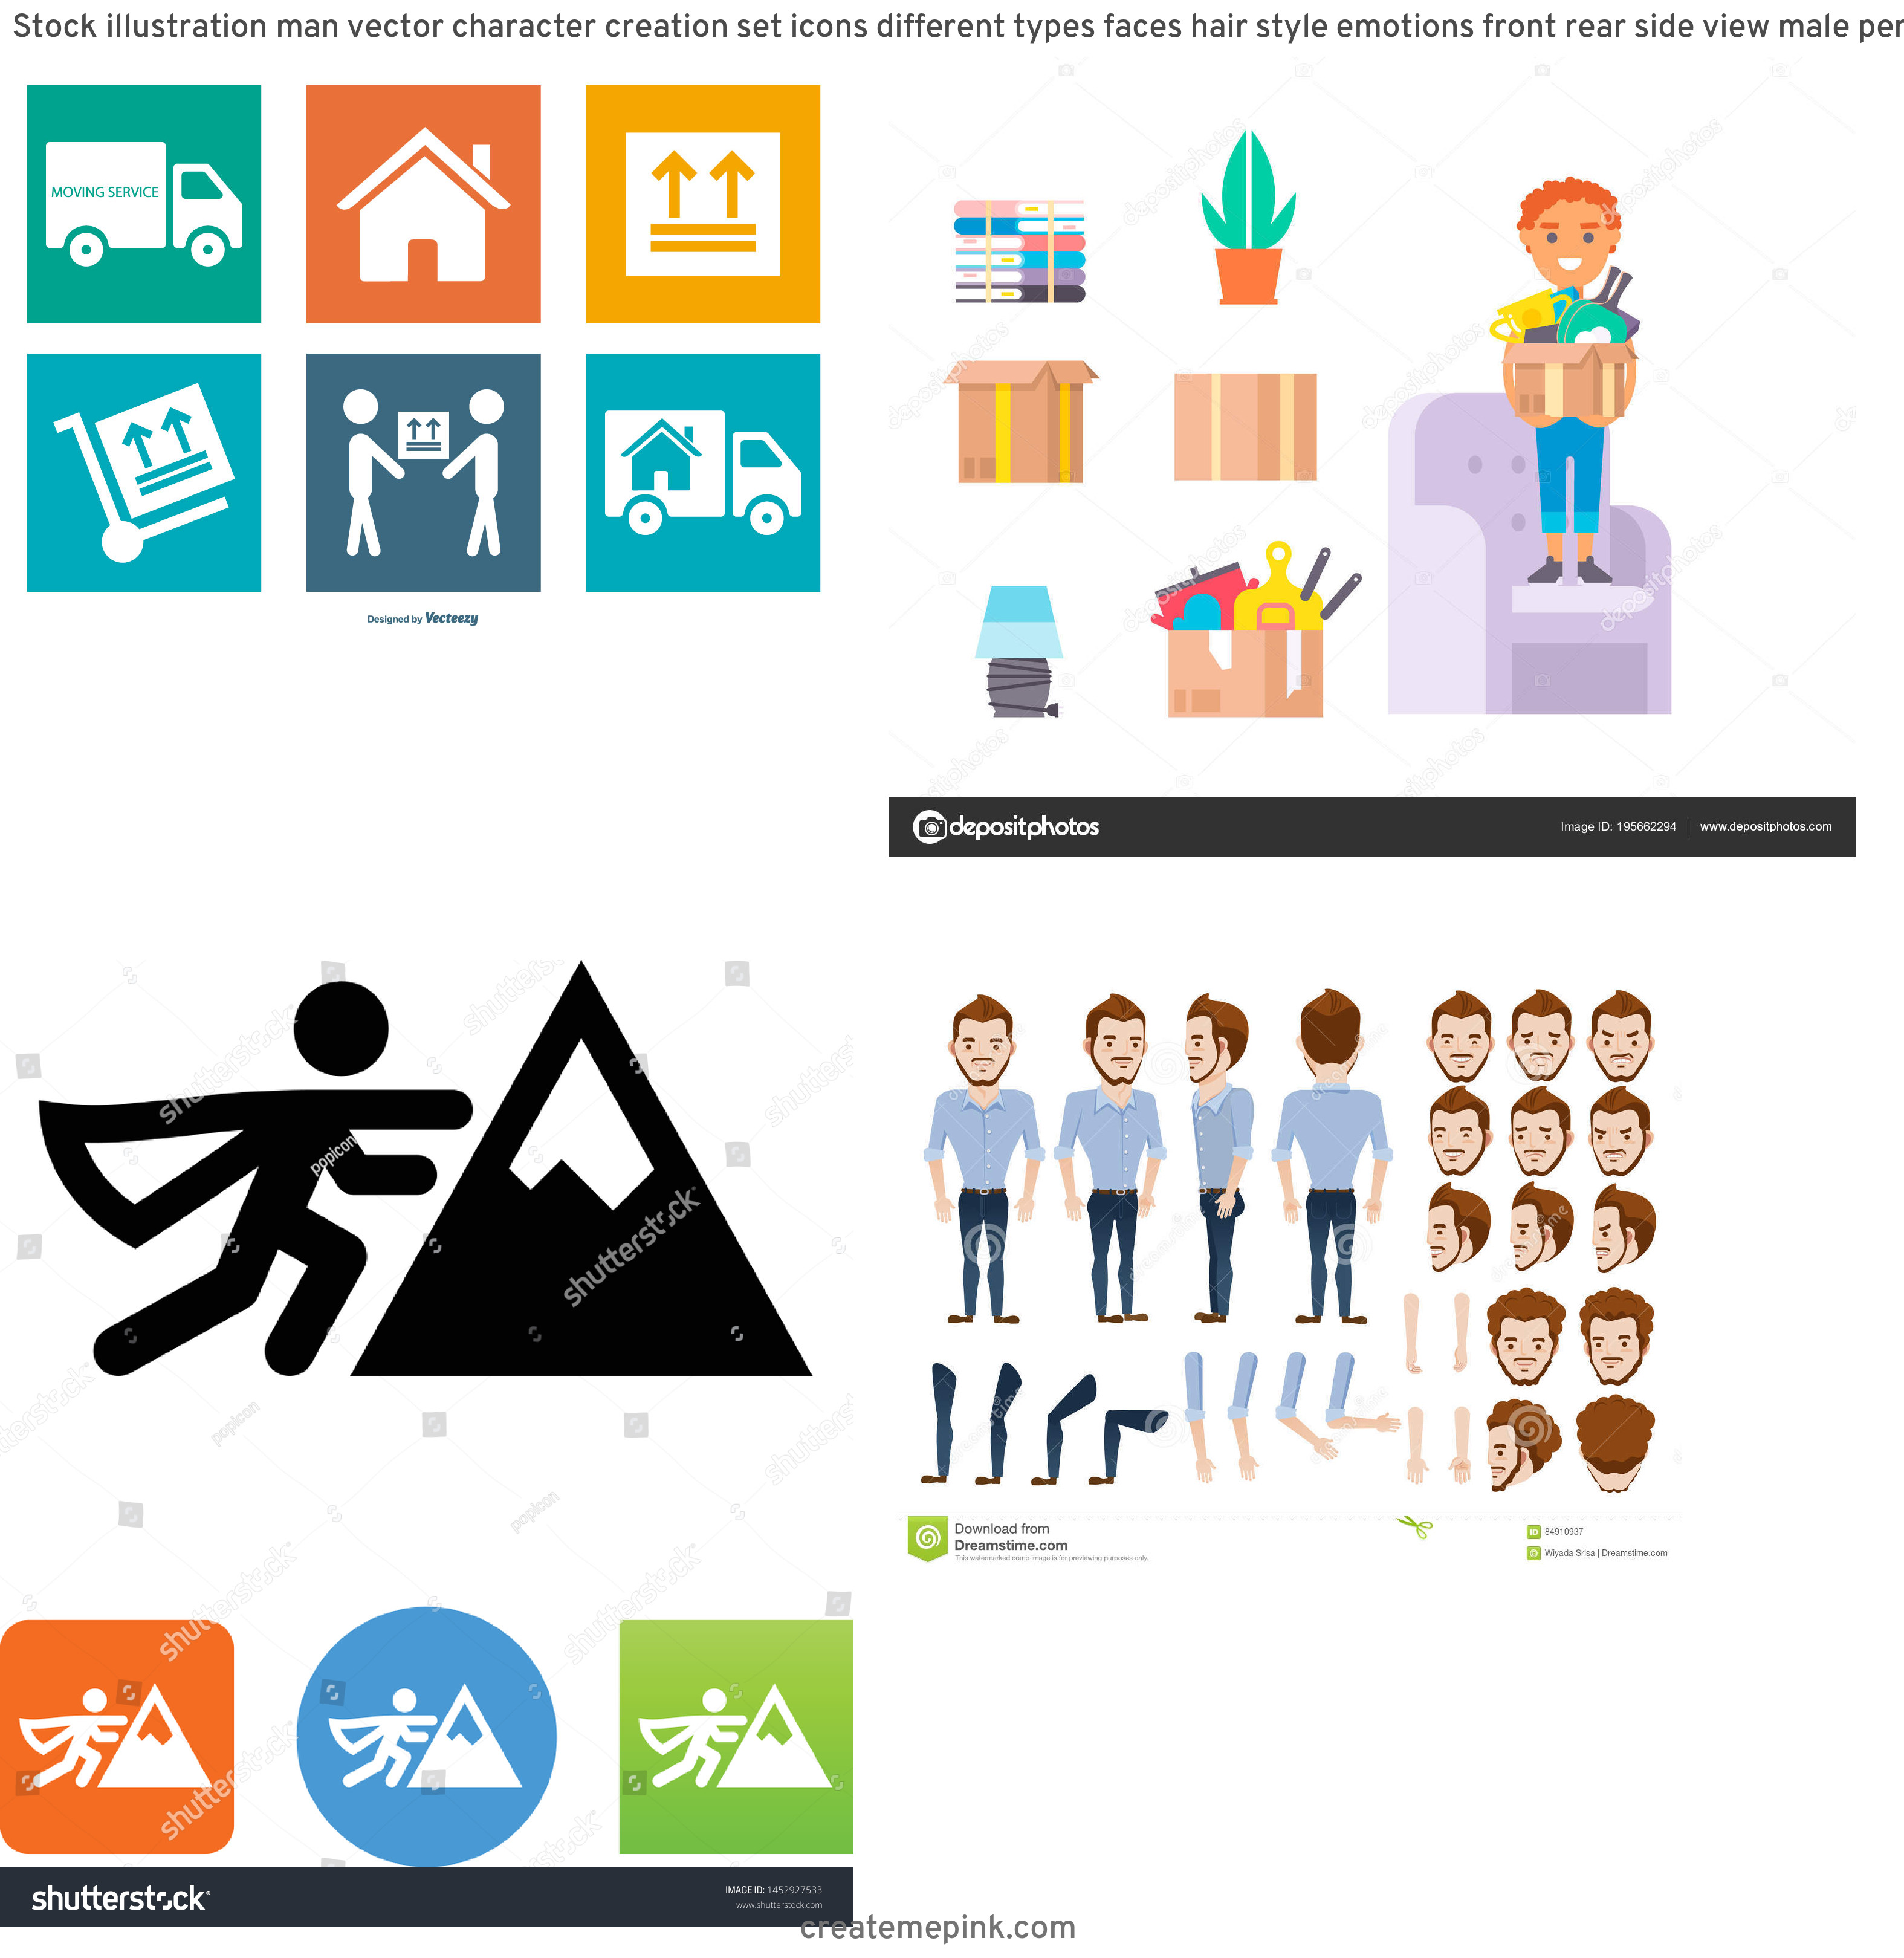 Vector Person Moving: Stock Illustration Man Vector Character Creation Set Icons Different Types Faces Hair Style Emotions Front Rear Side View Male Person Image